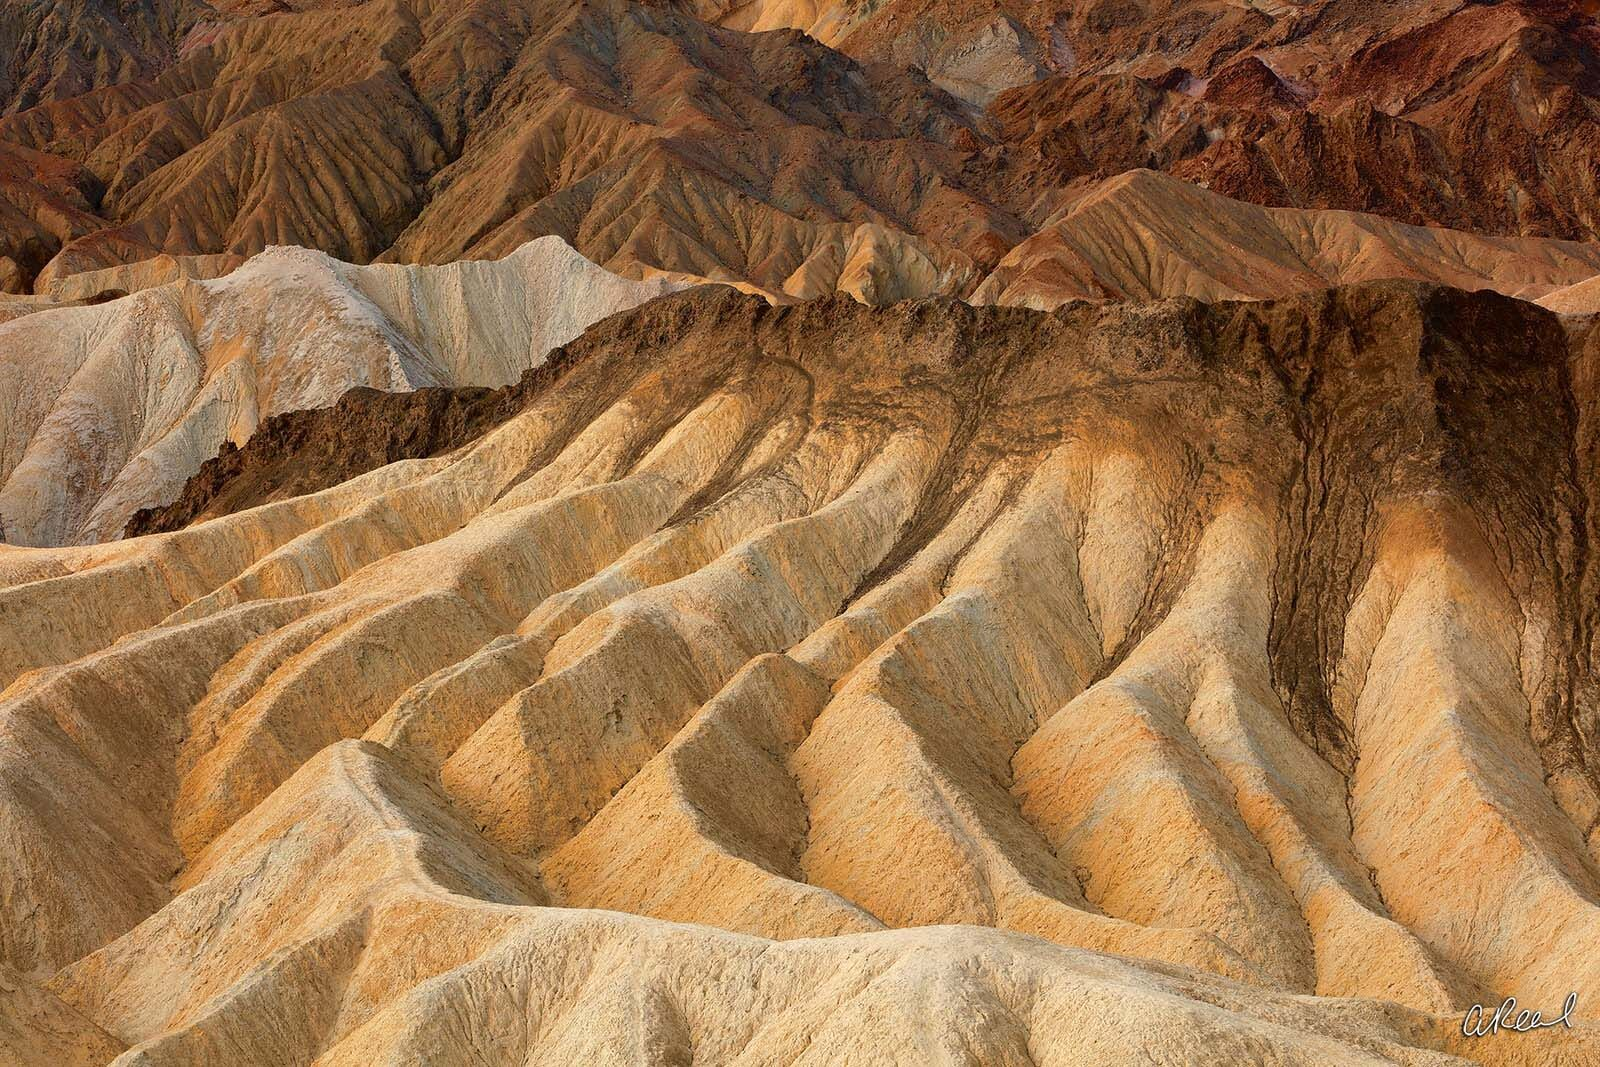 Fine Art, Limited Edition, Death Valley, California, Erosion, Zabriskie, National Park, California, Abstract, , photo